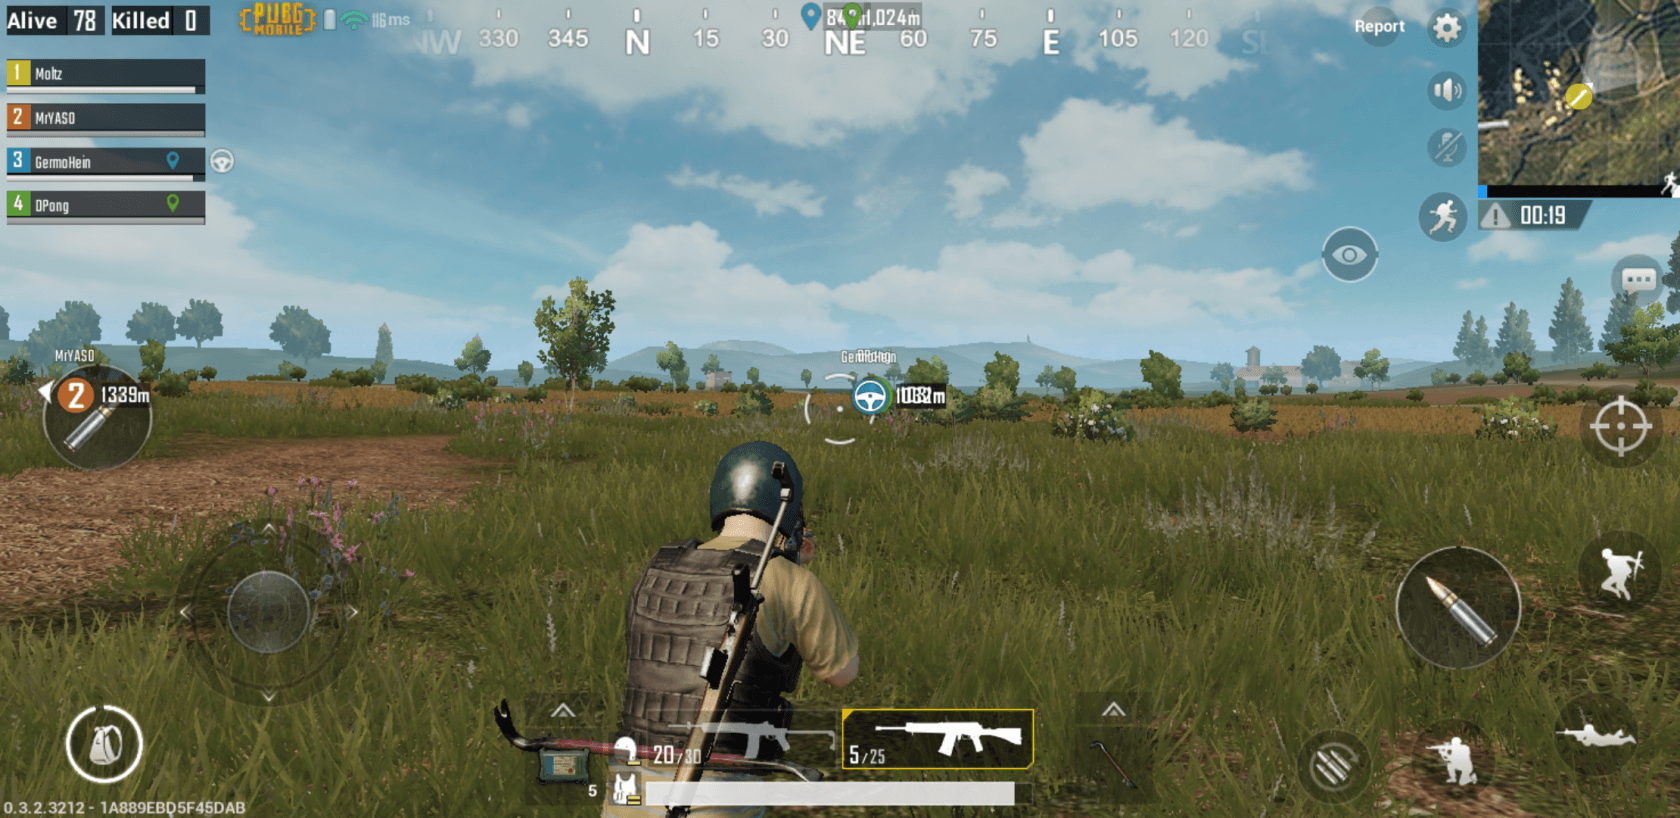 PUBG Mobile Lite is a faster, lightweight alternative for